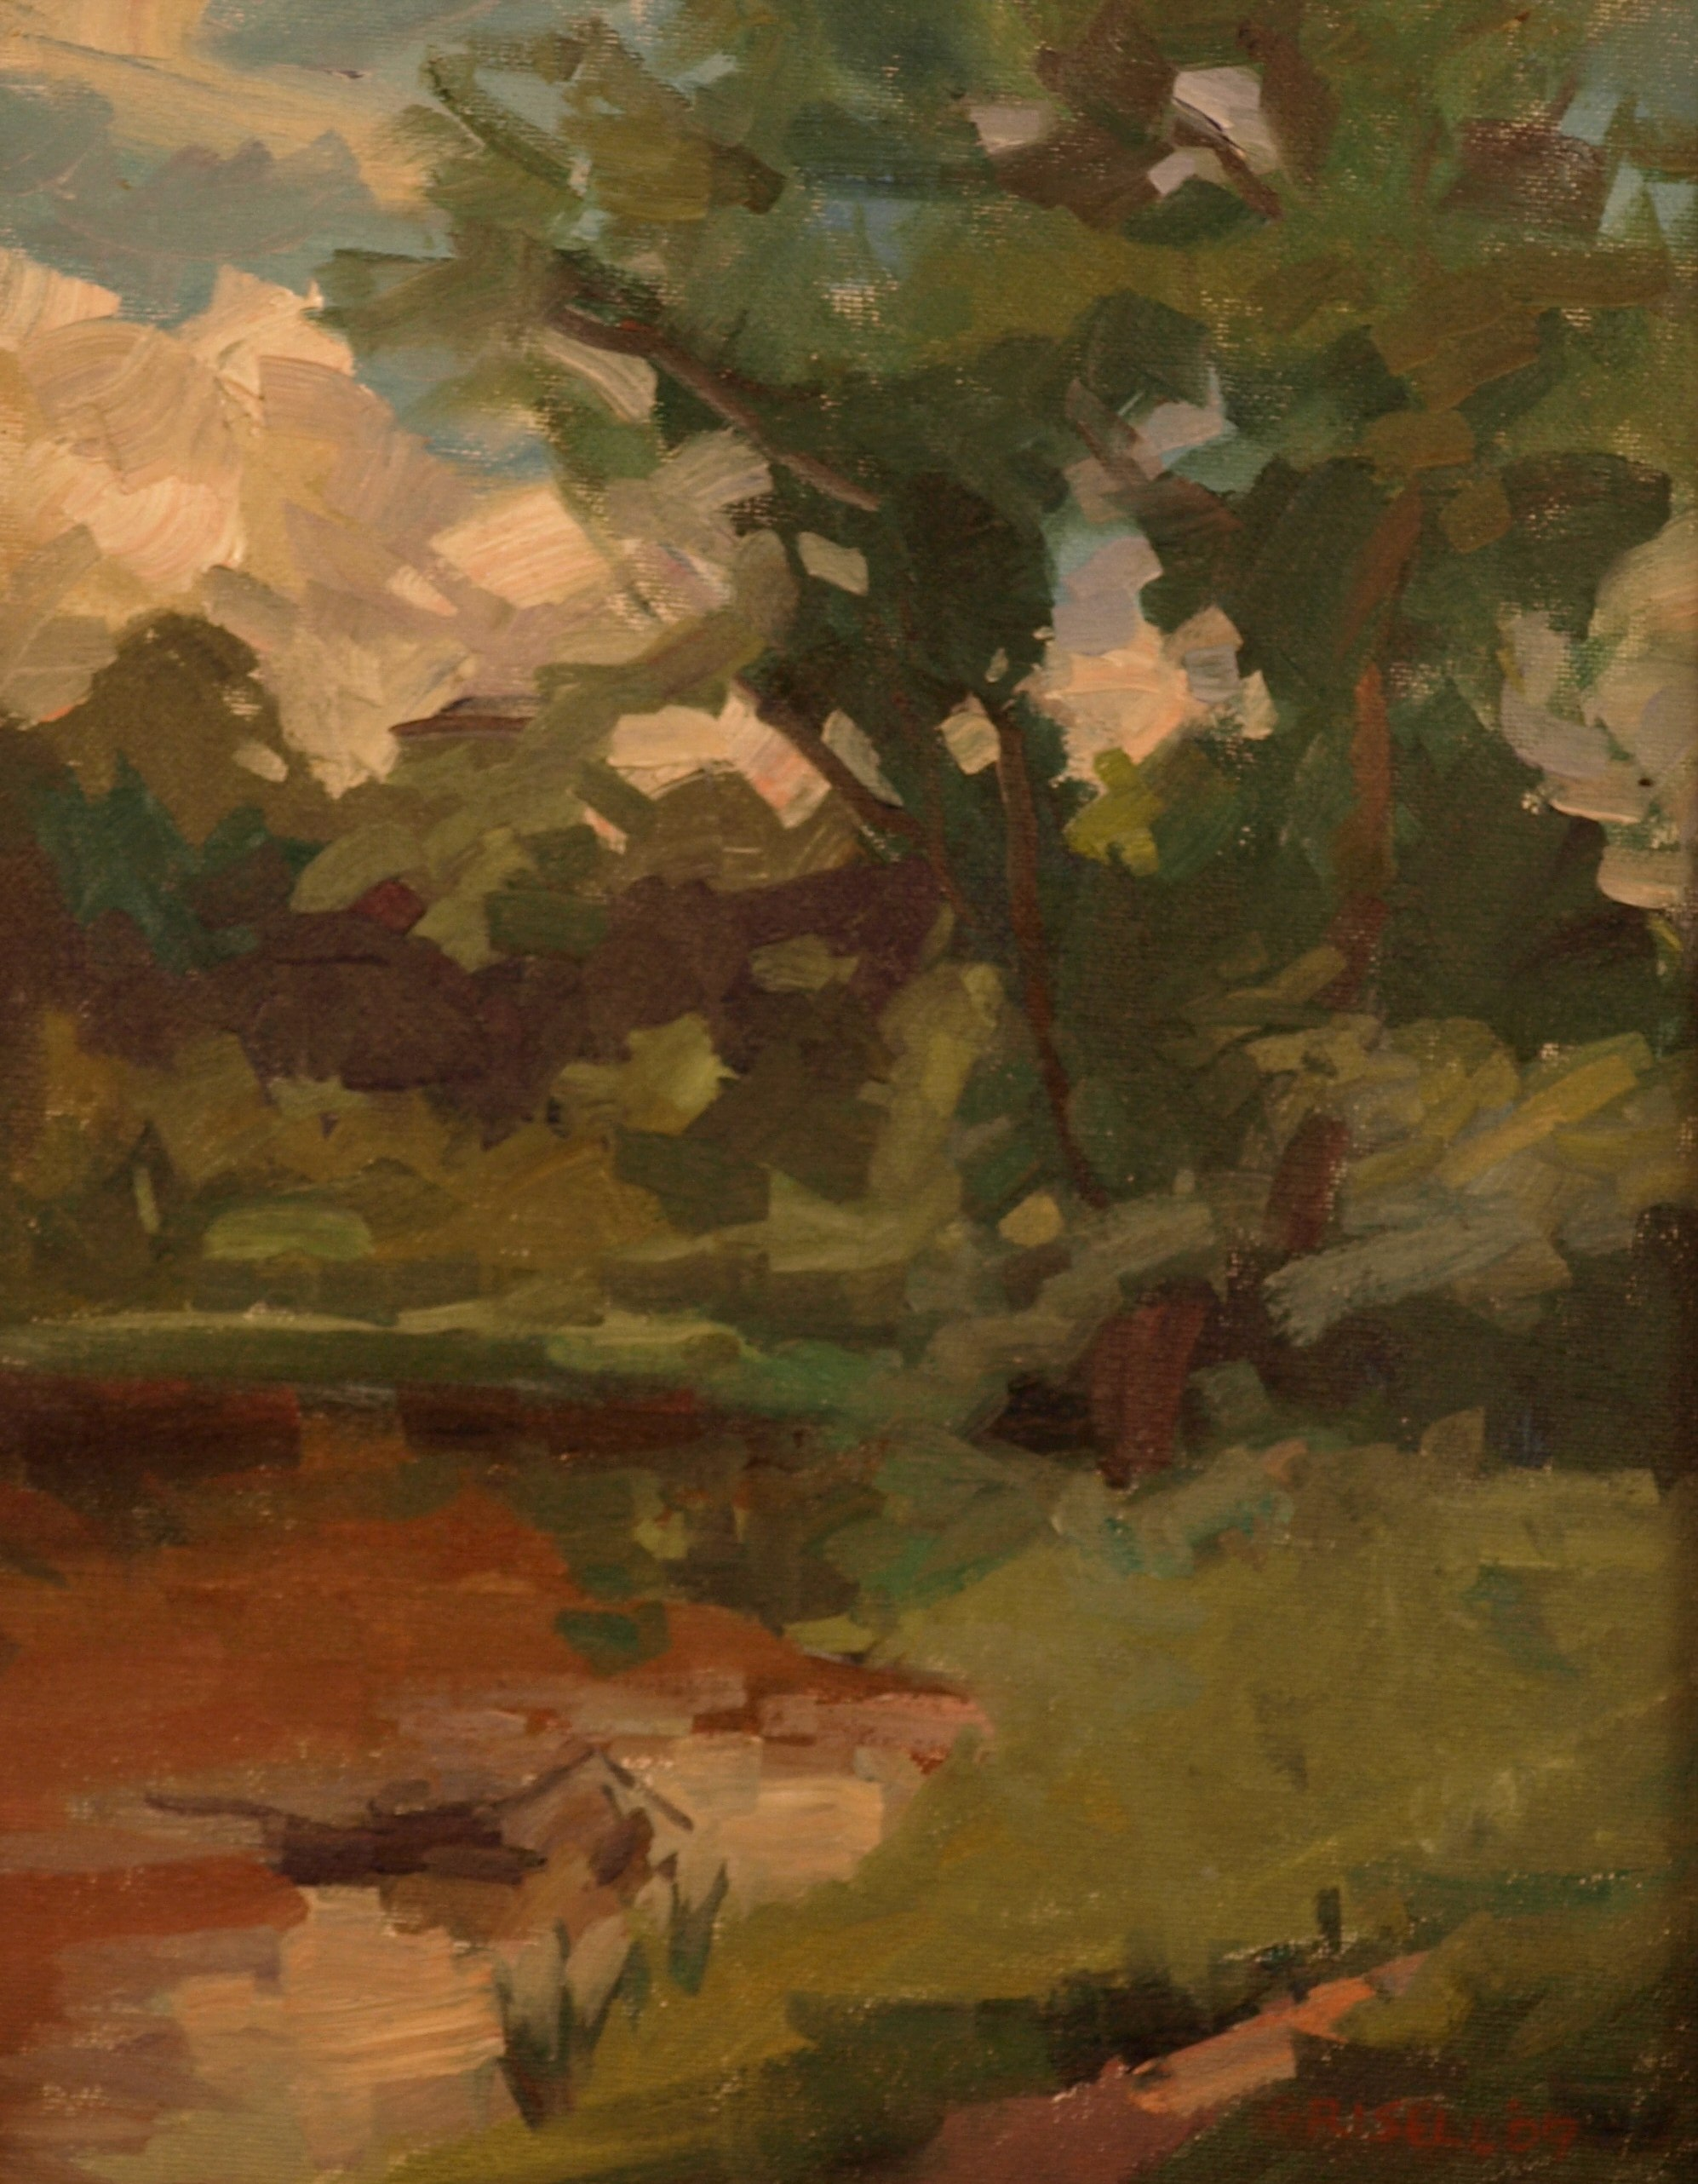 Pasture Trees and Brook, Oil on Board, 14 x 11 Inches, by Susan Grisell, $250